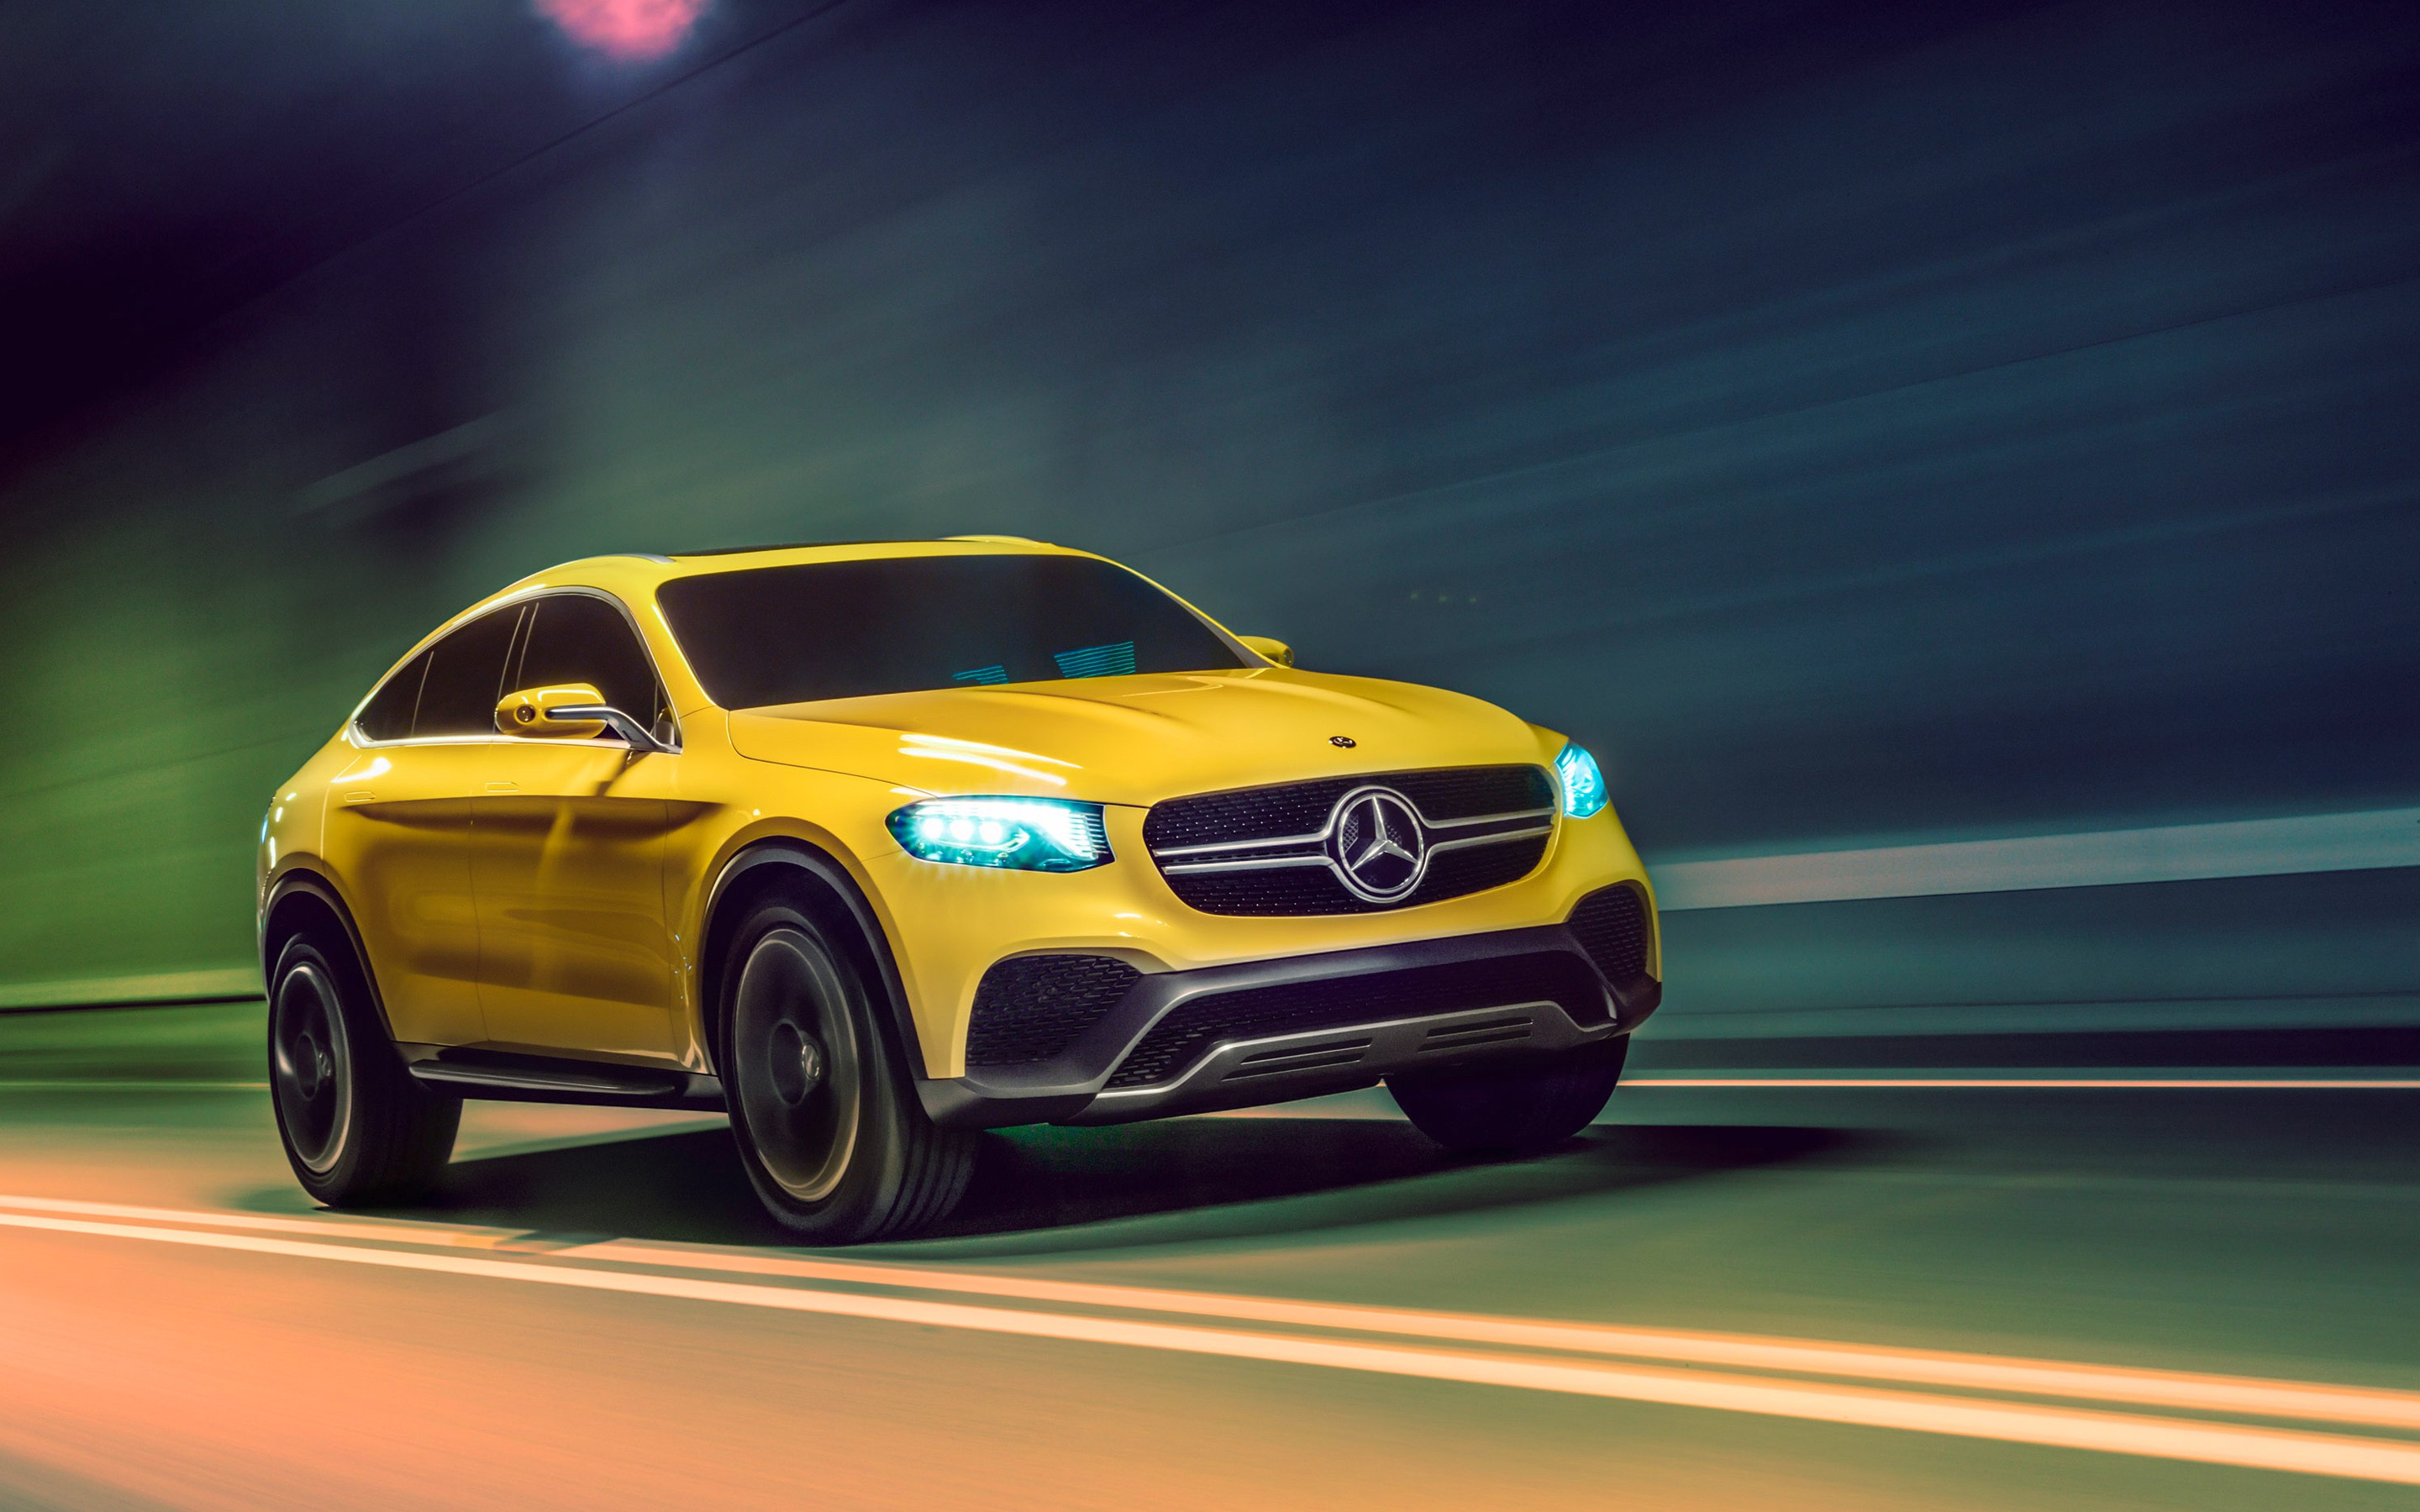 1366x768 Mercedes Benz Glc Coupe Concept 1366x768 Resolution Hd 4k Wallpapers Images Backgrounds Photos And Pictures